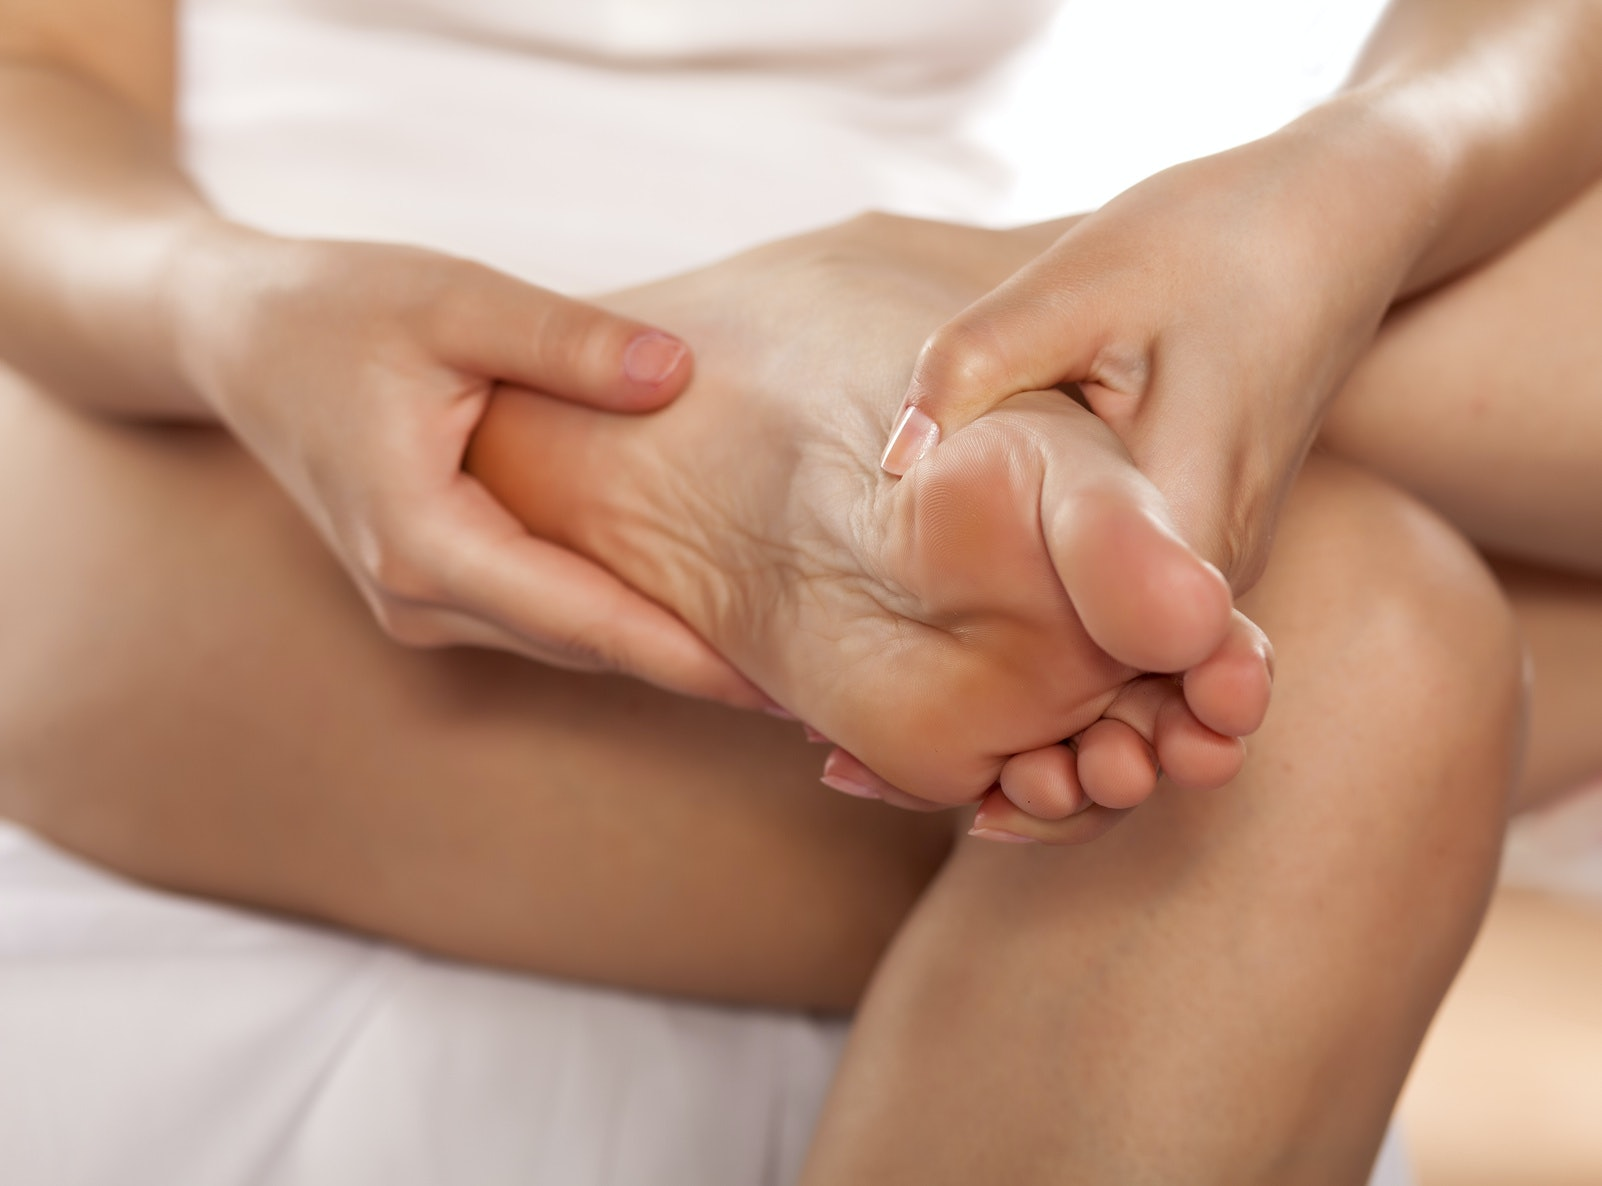 Does Acupressure Work? Period Pain Can Be Managed With The